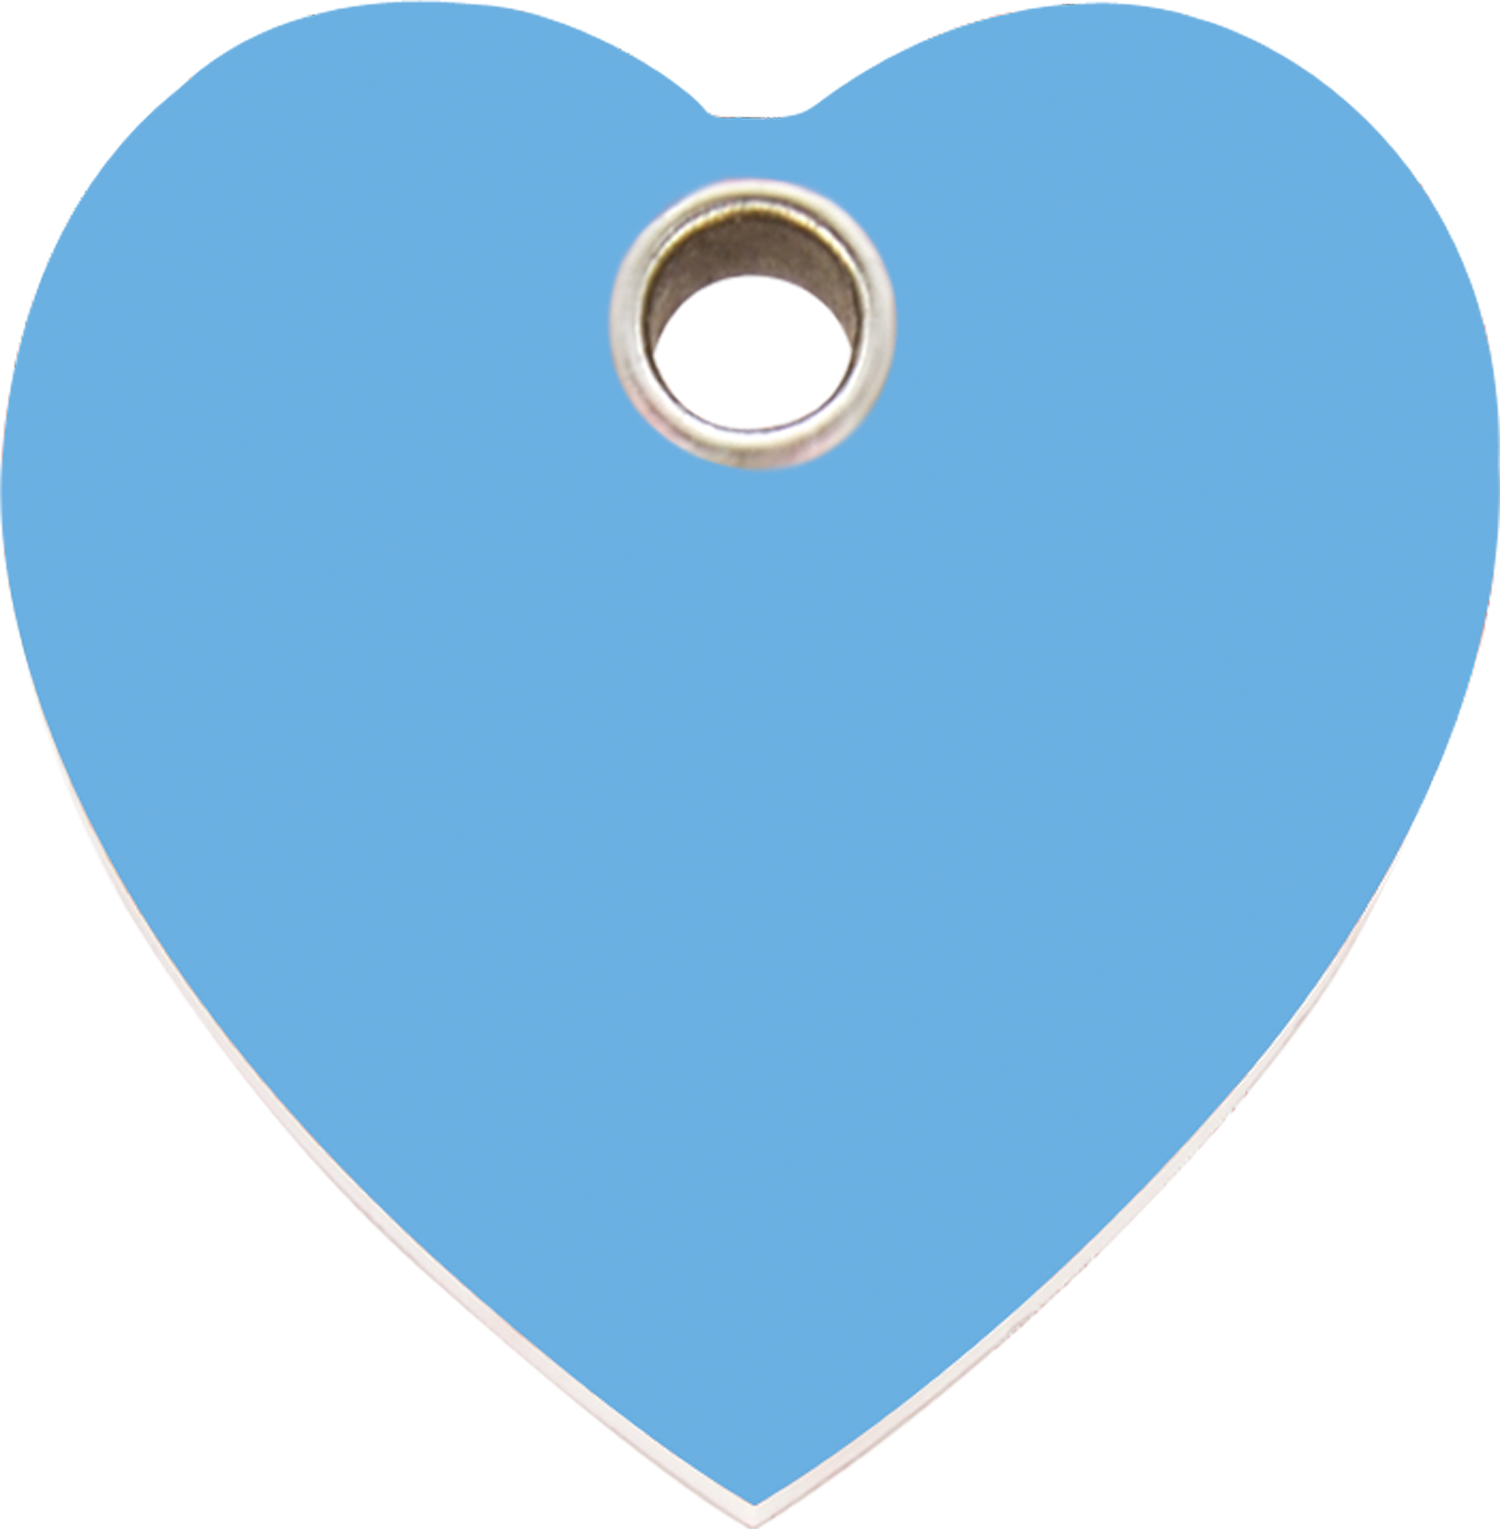 Light blue heart clipart image library download Red Dingo Plastic Tag Heart Light Blue 04-HT-LB (4HTLBS / 4HTLBM ... image library download